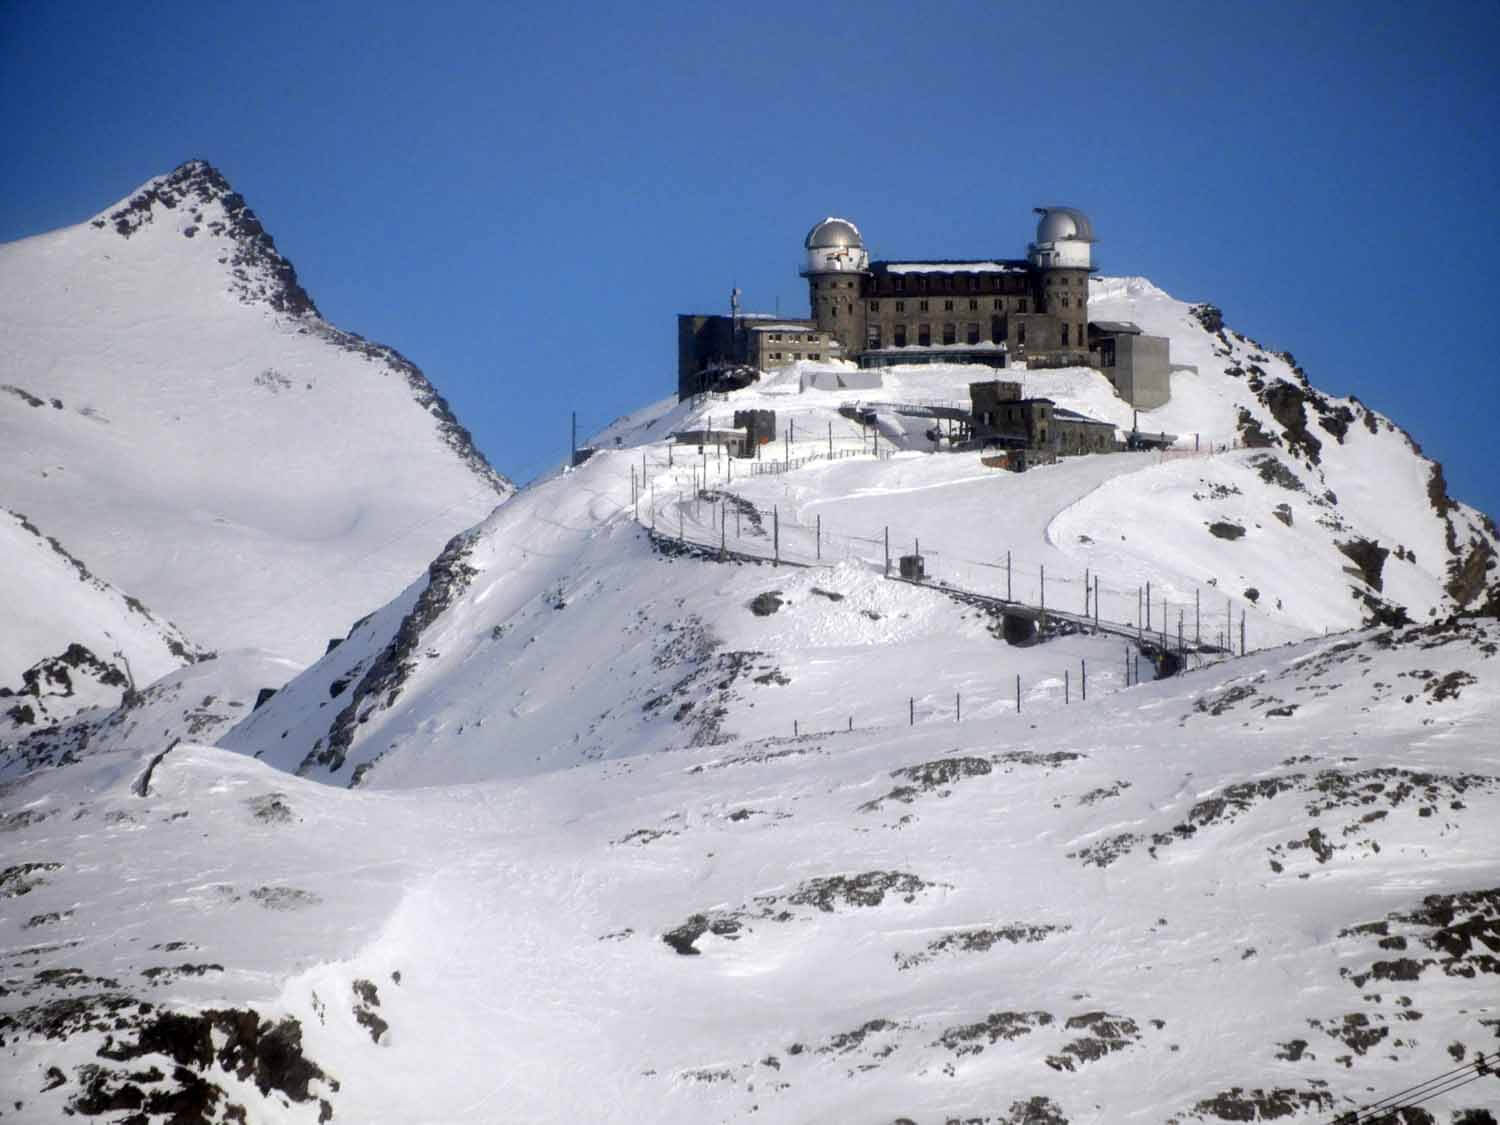 """Quick Tip - A roundtrip train ticket from Zermatt to the Gornergrat station from November to April is only 4 CHF less than the """"Ski Pass Zermatt"""". Even if you aren't skiing, you'll be better off buying the ski pass so you can check out the Matterhorn from the other lifts like the Sunnegga and Furi as well. Also, a roundtrip ticket on the Gornergrat from May-October varies between 98 CHF and 114 CHF, so going in the winter will get you the most bang for your buck!"""